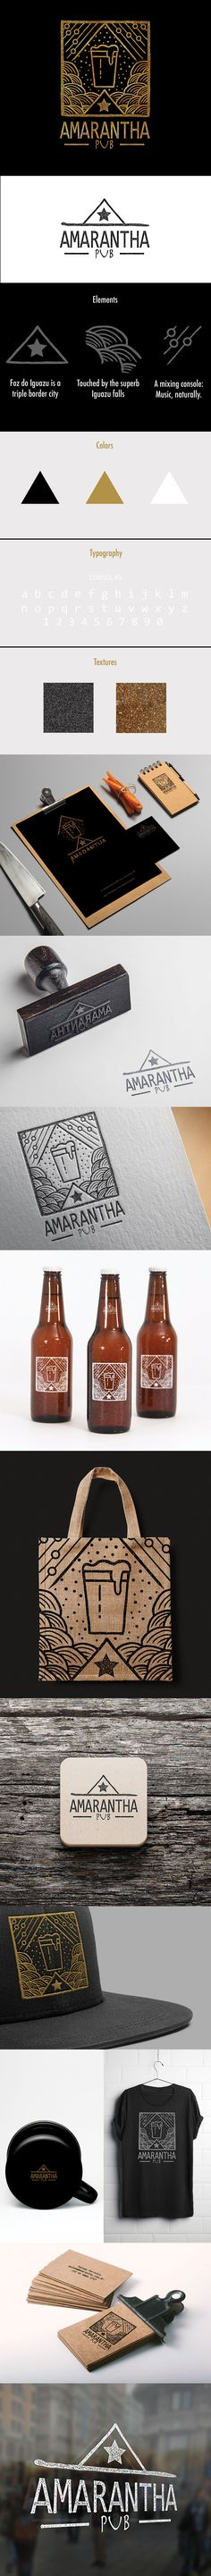 Amarantha Pub Brand Design. Amarantha Pub is a cherished bar in Foz do Iguazu, Brazil, which is a city well-known for being triple bordered. It unites Brazil, Argentina and Paraguay, and has a multi-ethnic crowd mixed with those who visit wishing to feel the energy of the superb Iguazu Falls.   So the Brand Design expresses the conviviality of both The Amarantha Pub and its city. https://www.behance.net/gallery/50684779/Amarantha-Pub-Brand-Design